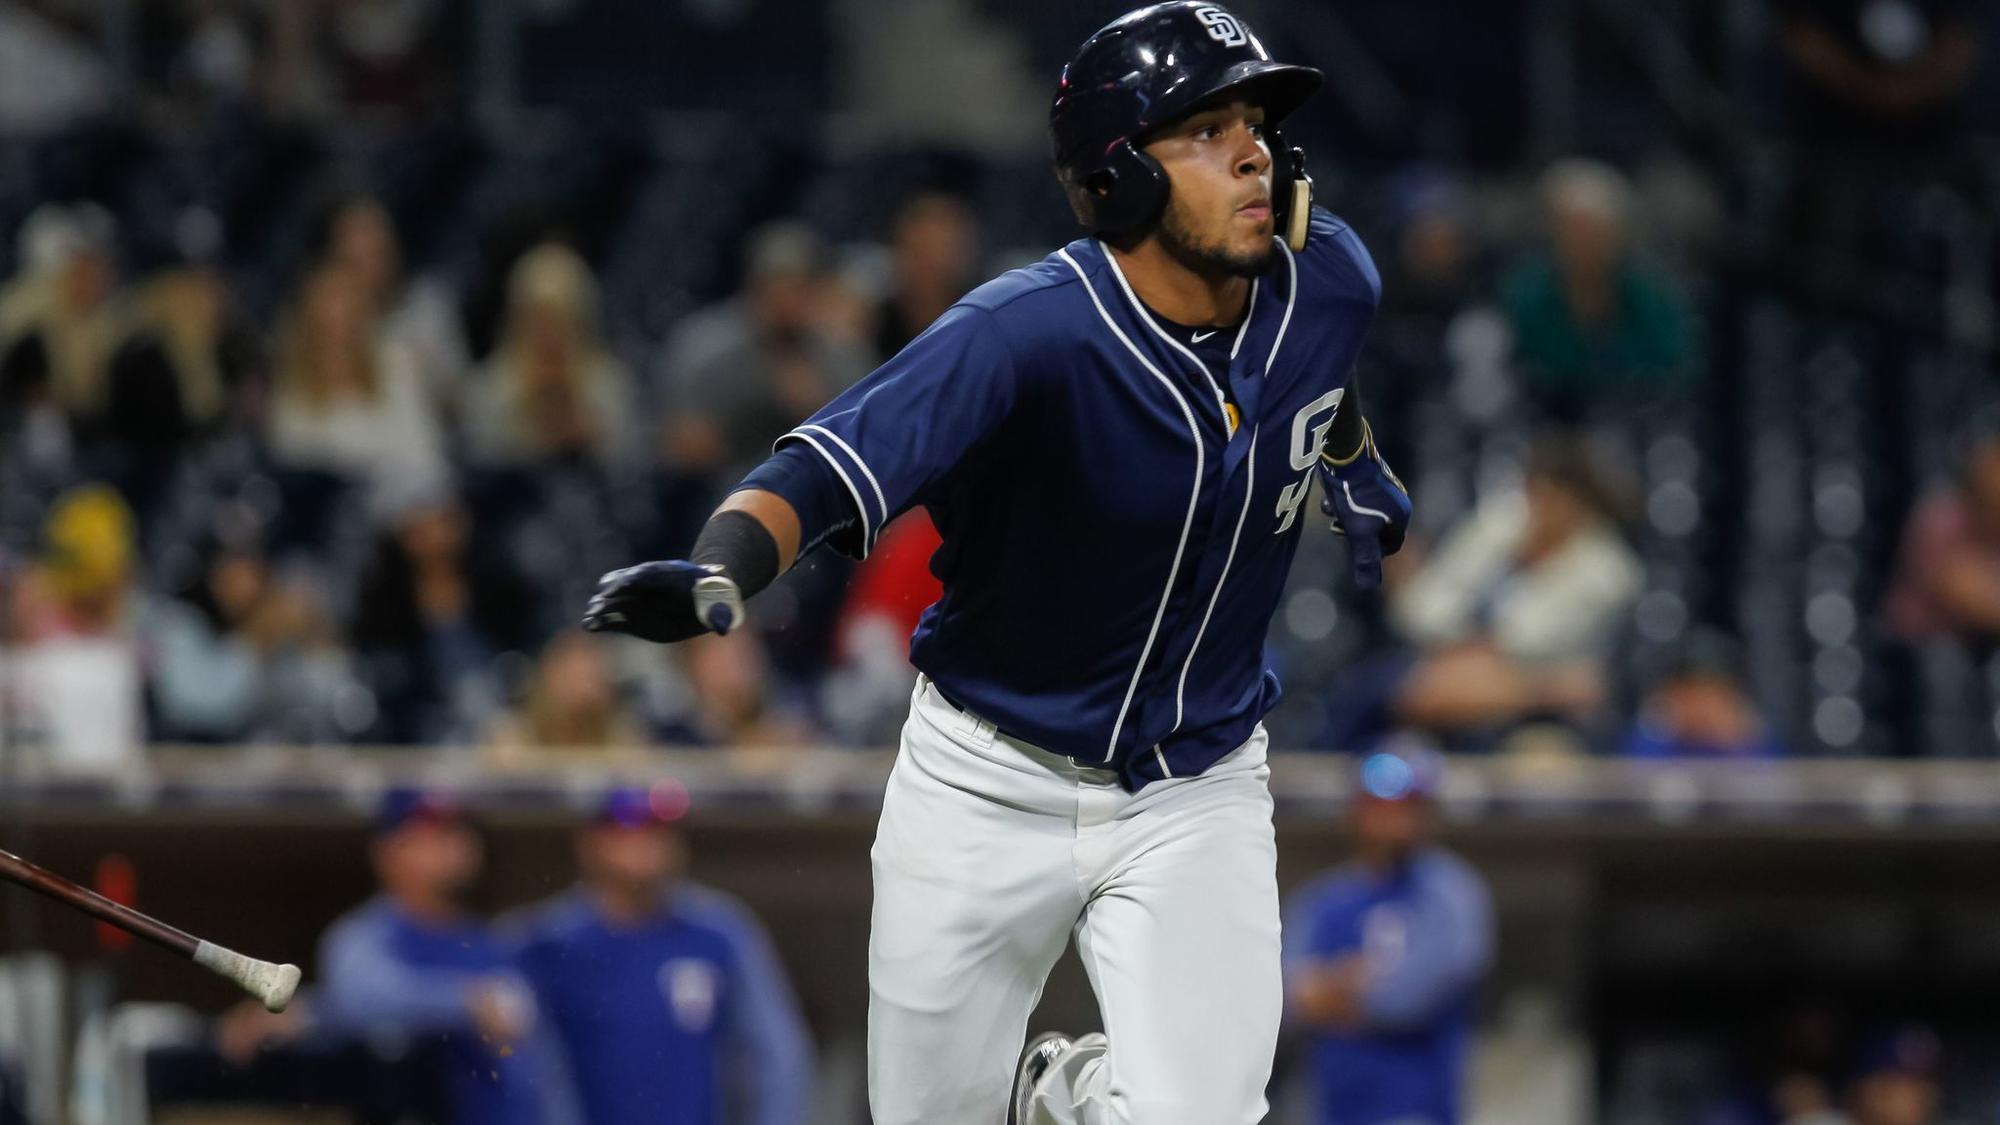 Sd-sp-padres-fernando-tatis-unfazed-youngest-player-in-any-mlb-camp-20180216